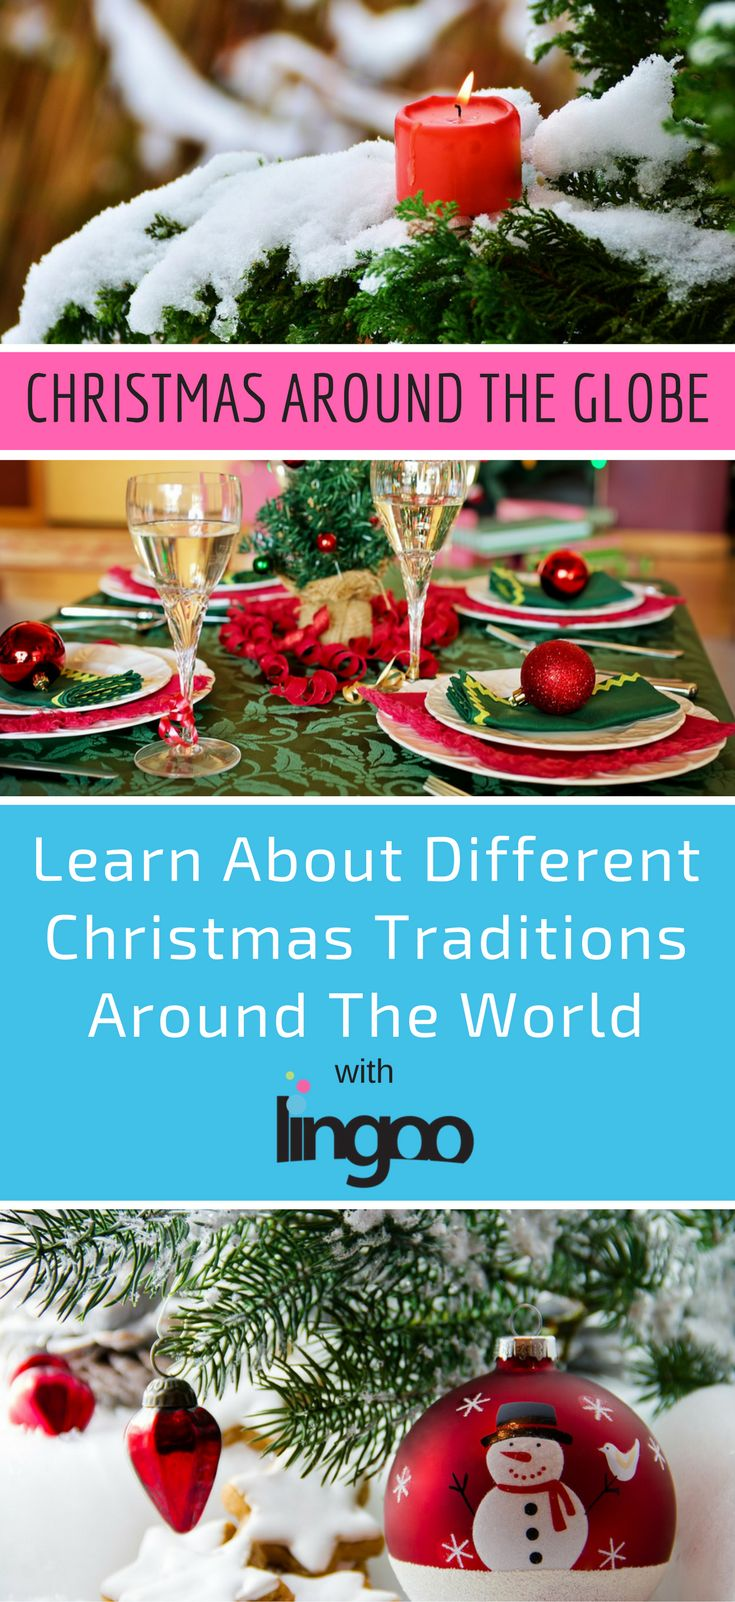 Christmas is a big deal in lots of countries around the world, but different places have different traditions. Click through to read about them | #christmas #christmastraditions #merrychristmas #culture #culturelovers #culturefan #cultureaddict #newculture #foreignculture #france #germany #italy #mexico #brazil